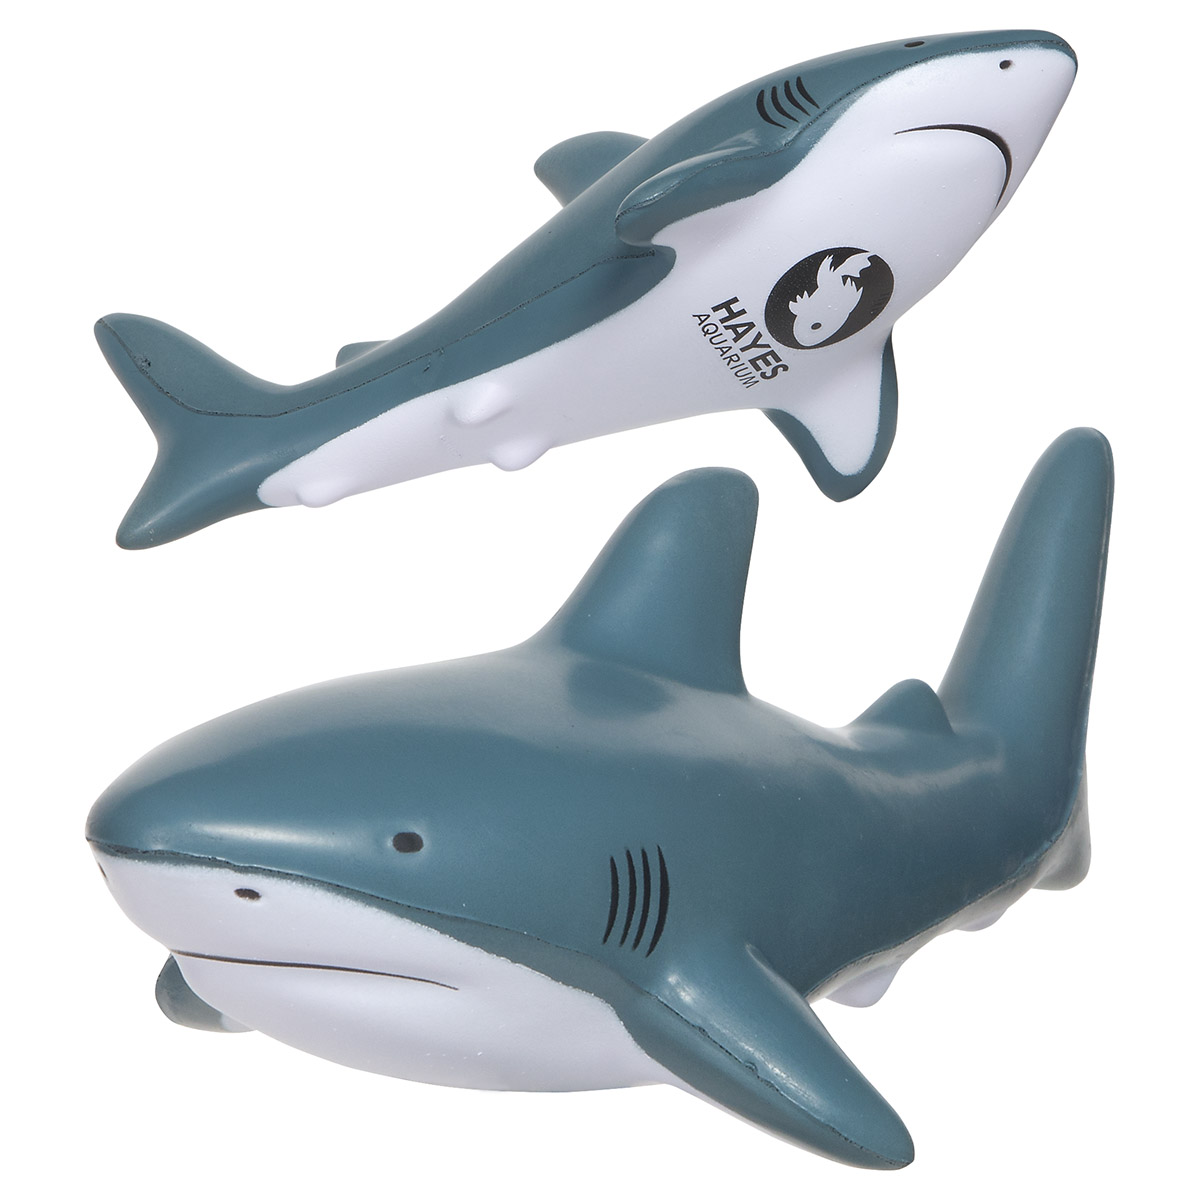 Shark Stress Reliever, LAA-SK15 - 1 Colour Imprint